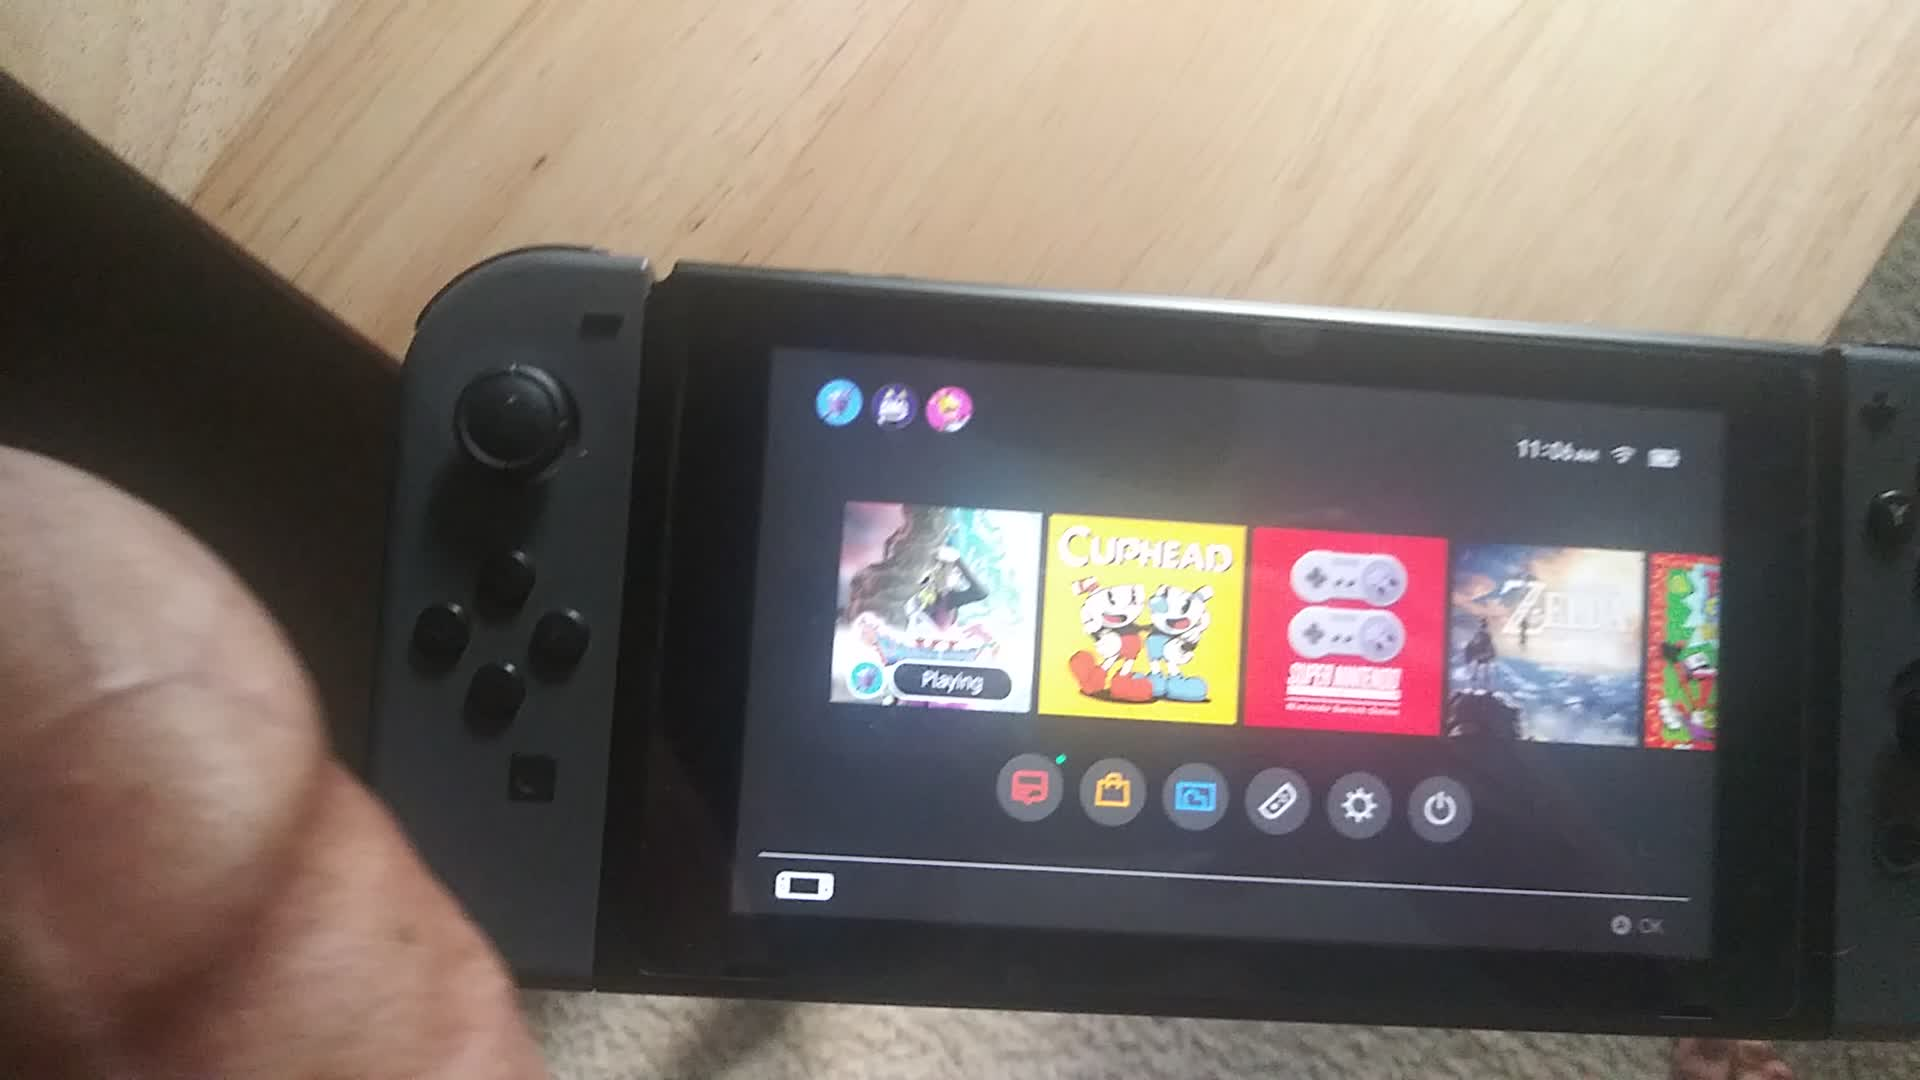 Navigating the Nintendo Switch menu with my Wii-meat controller!